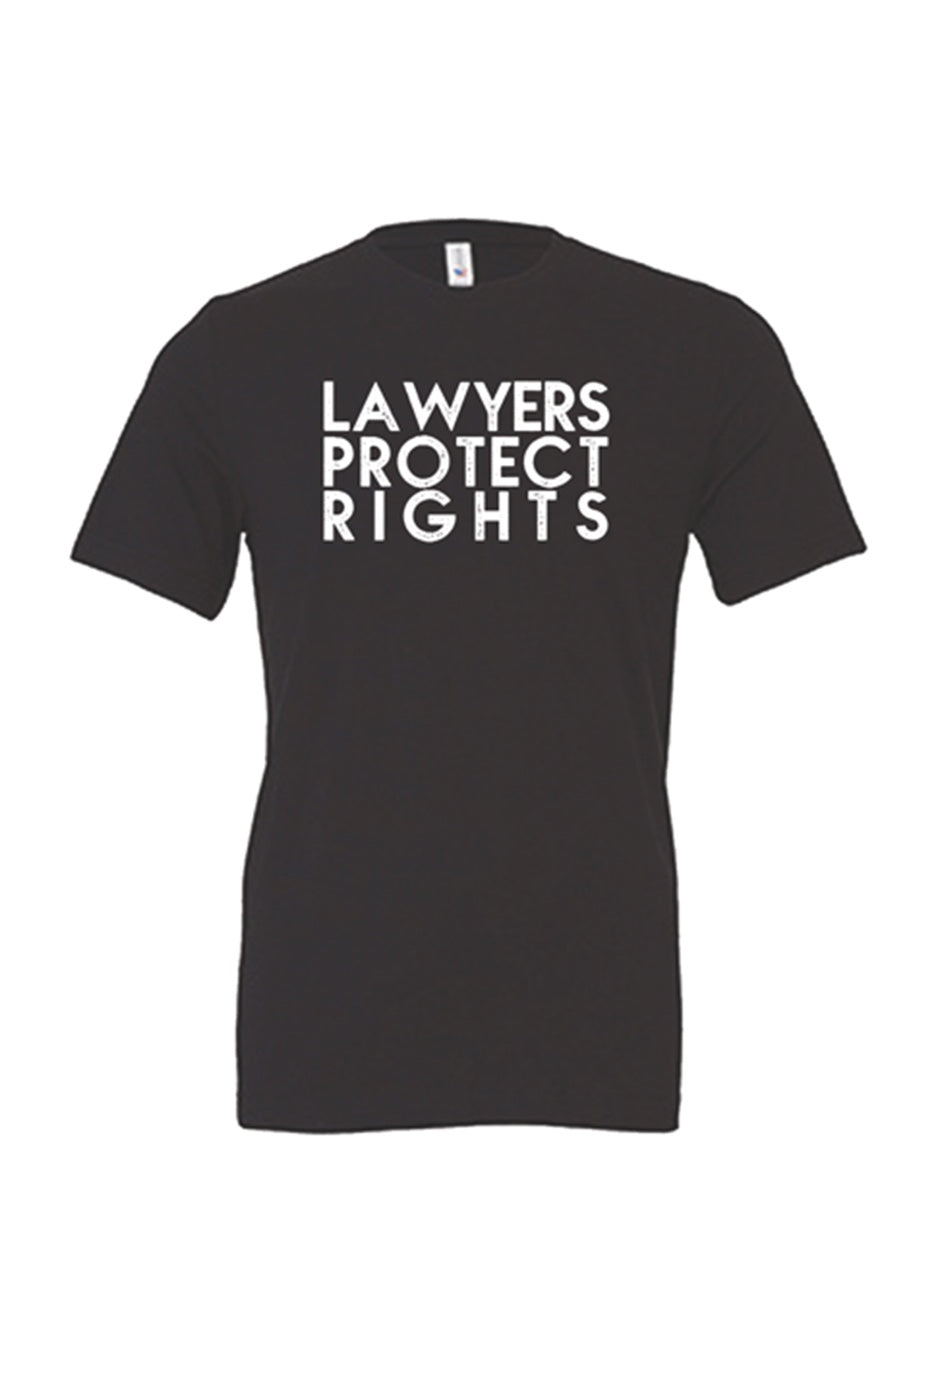 Lawyers Protect Rights T-Shirt